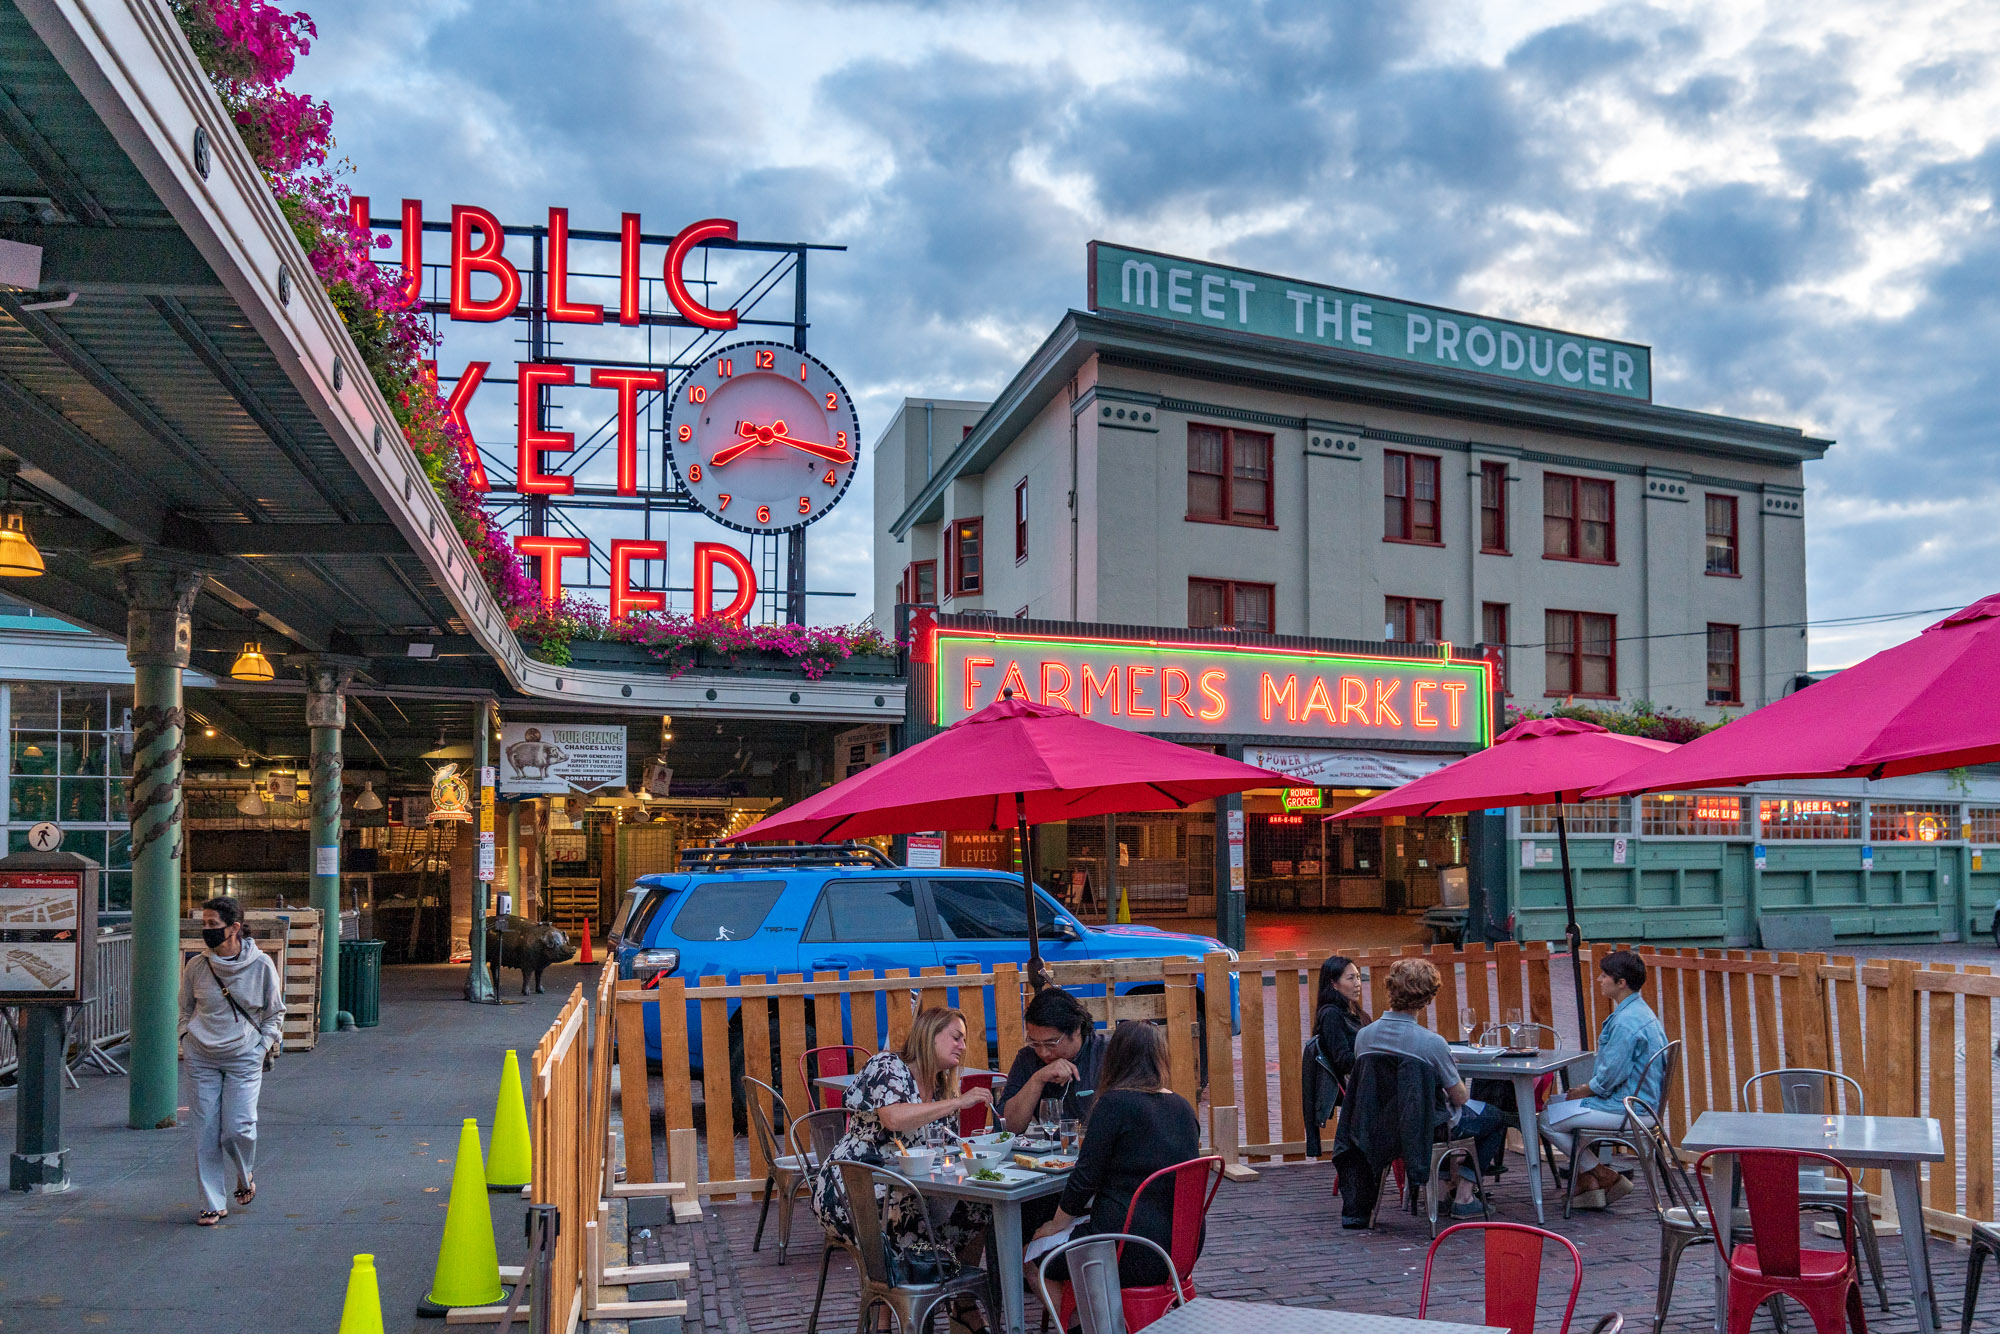 Outdoor seating around Pike Place Market, with the market's famed sign in the background and pink umbrellas displayed around tables filled with patrons